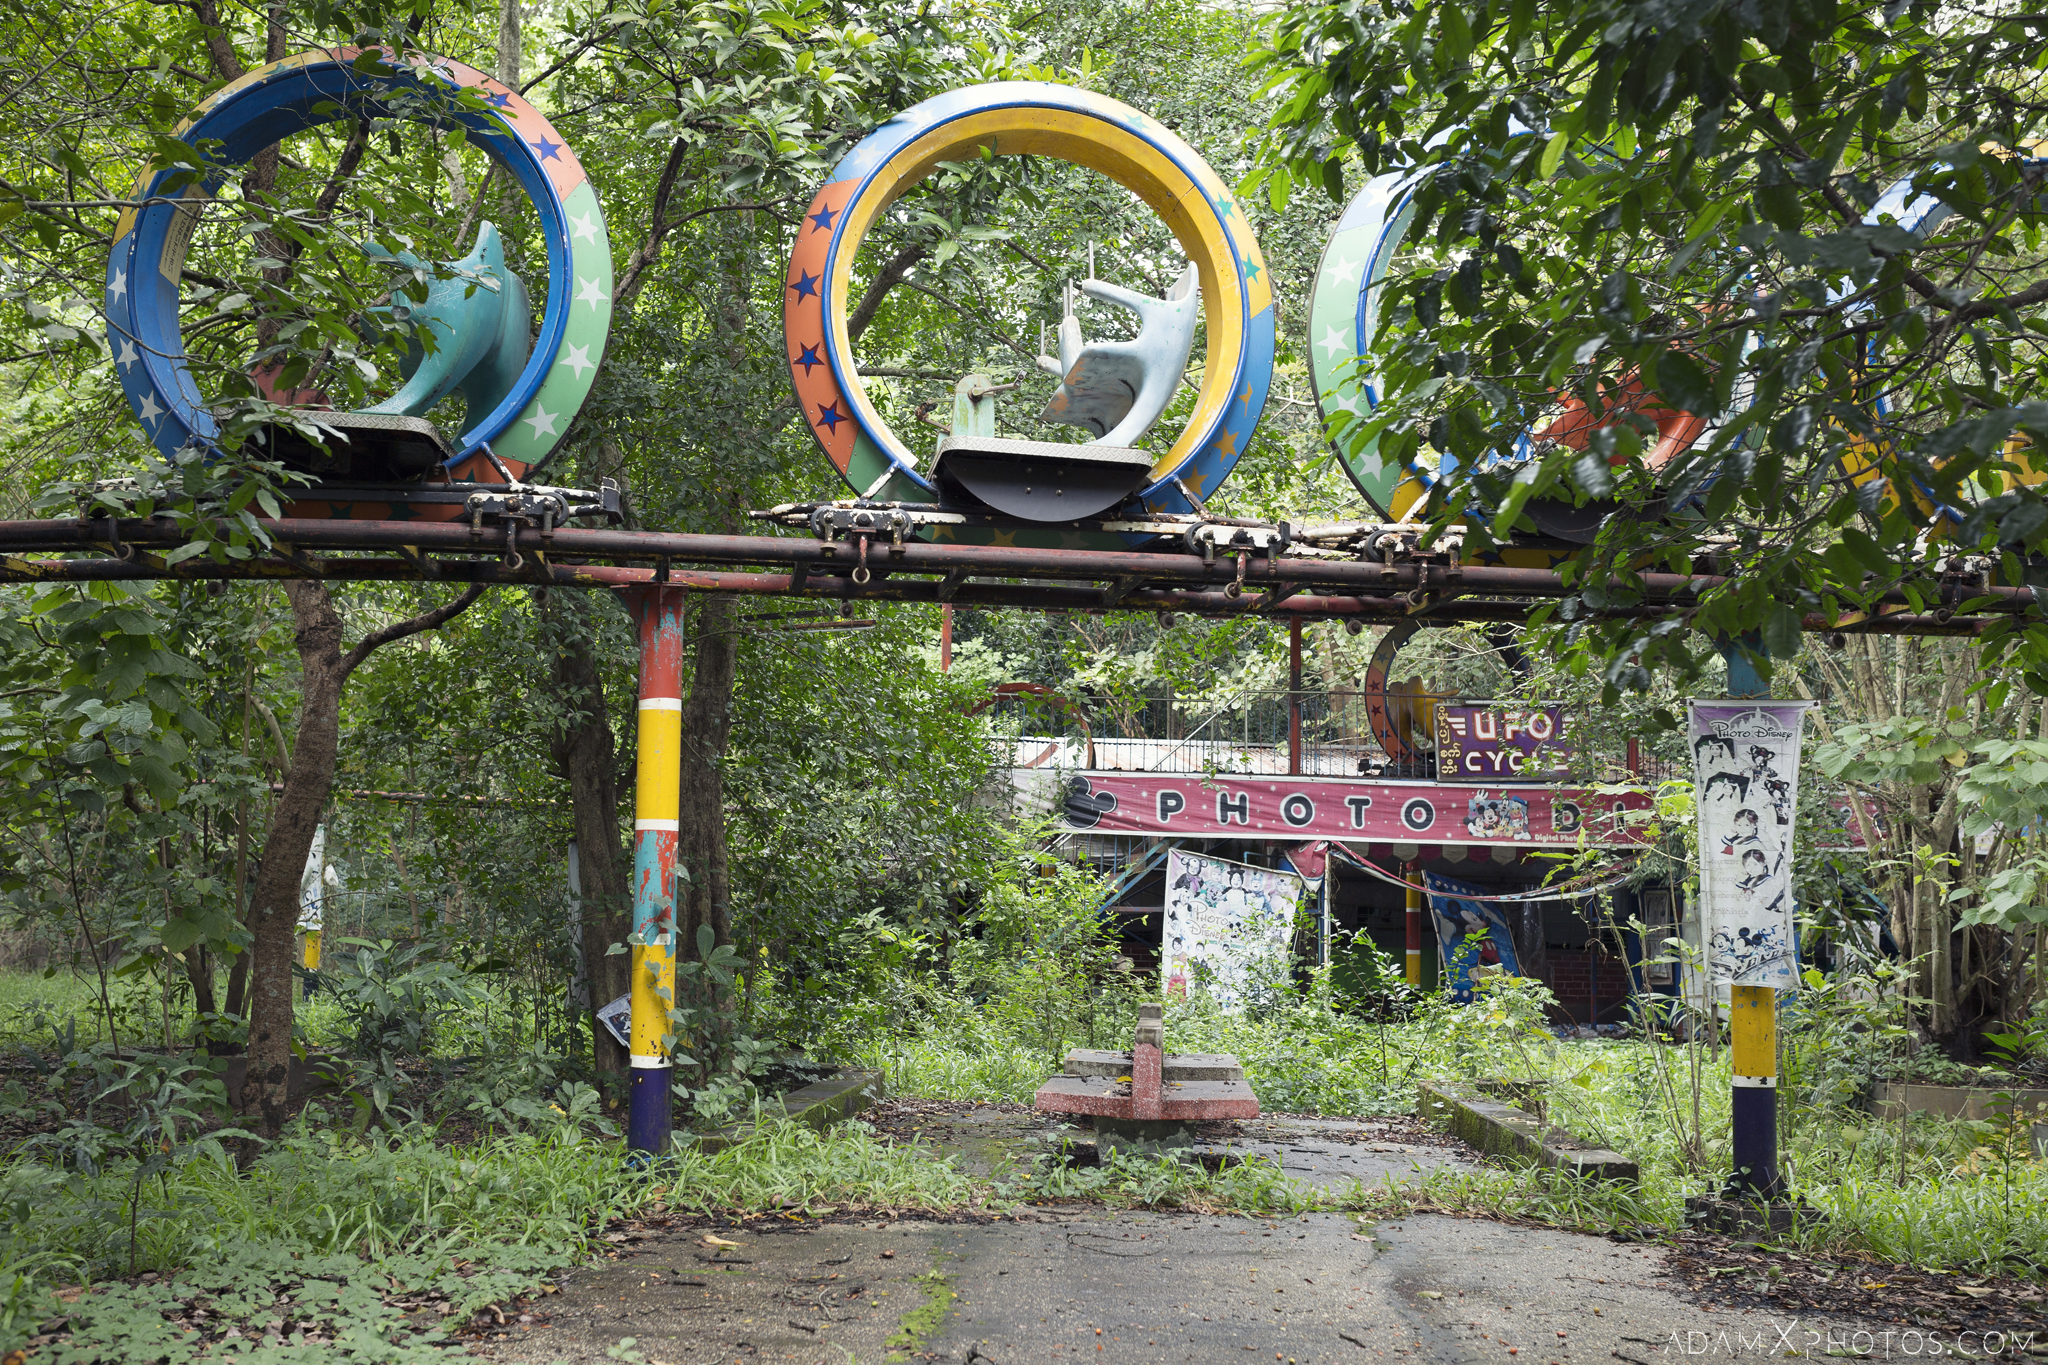 Happy World Theme Park Amusement Park Fairground Myanmar Burma Yangon Rangoon Urbex Adam X Urban Exploration Access 2016 Abandoned decay lost forgotten derelict location creepy haunting eerie